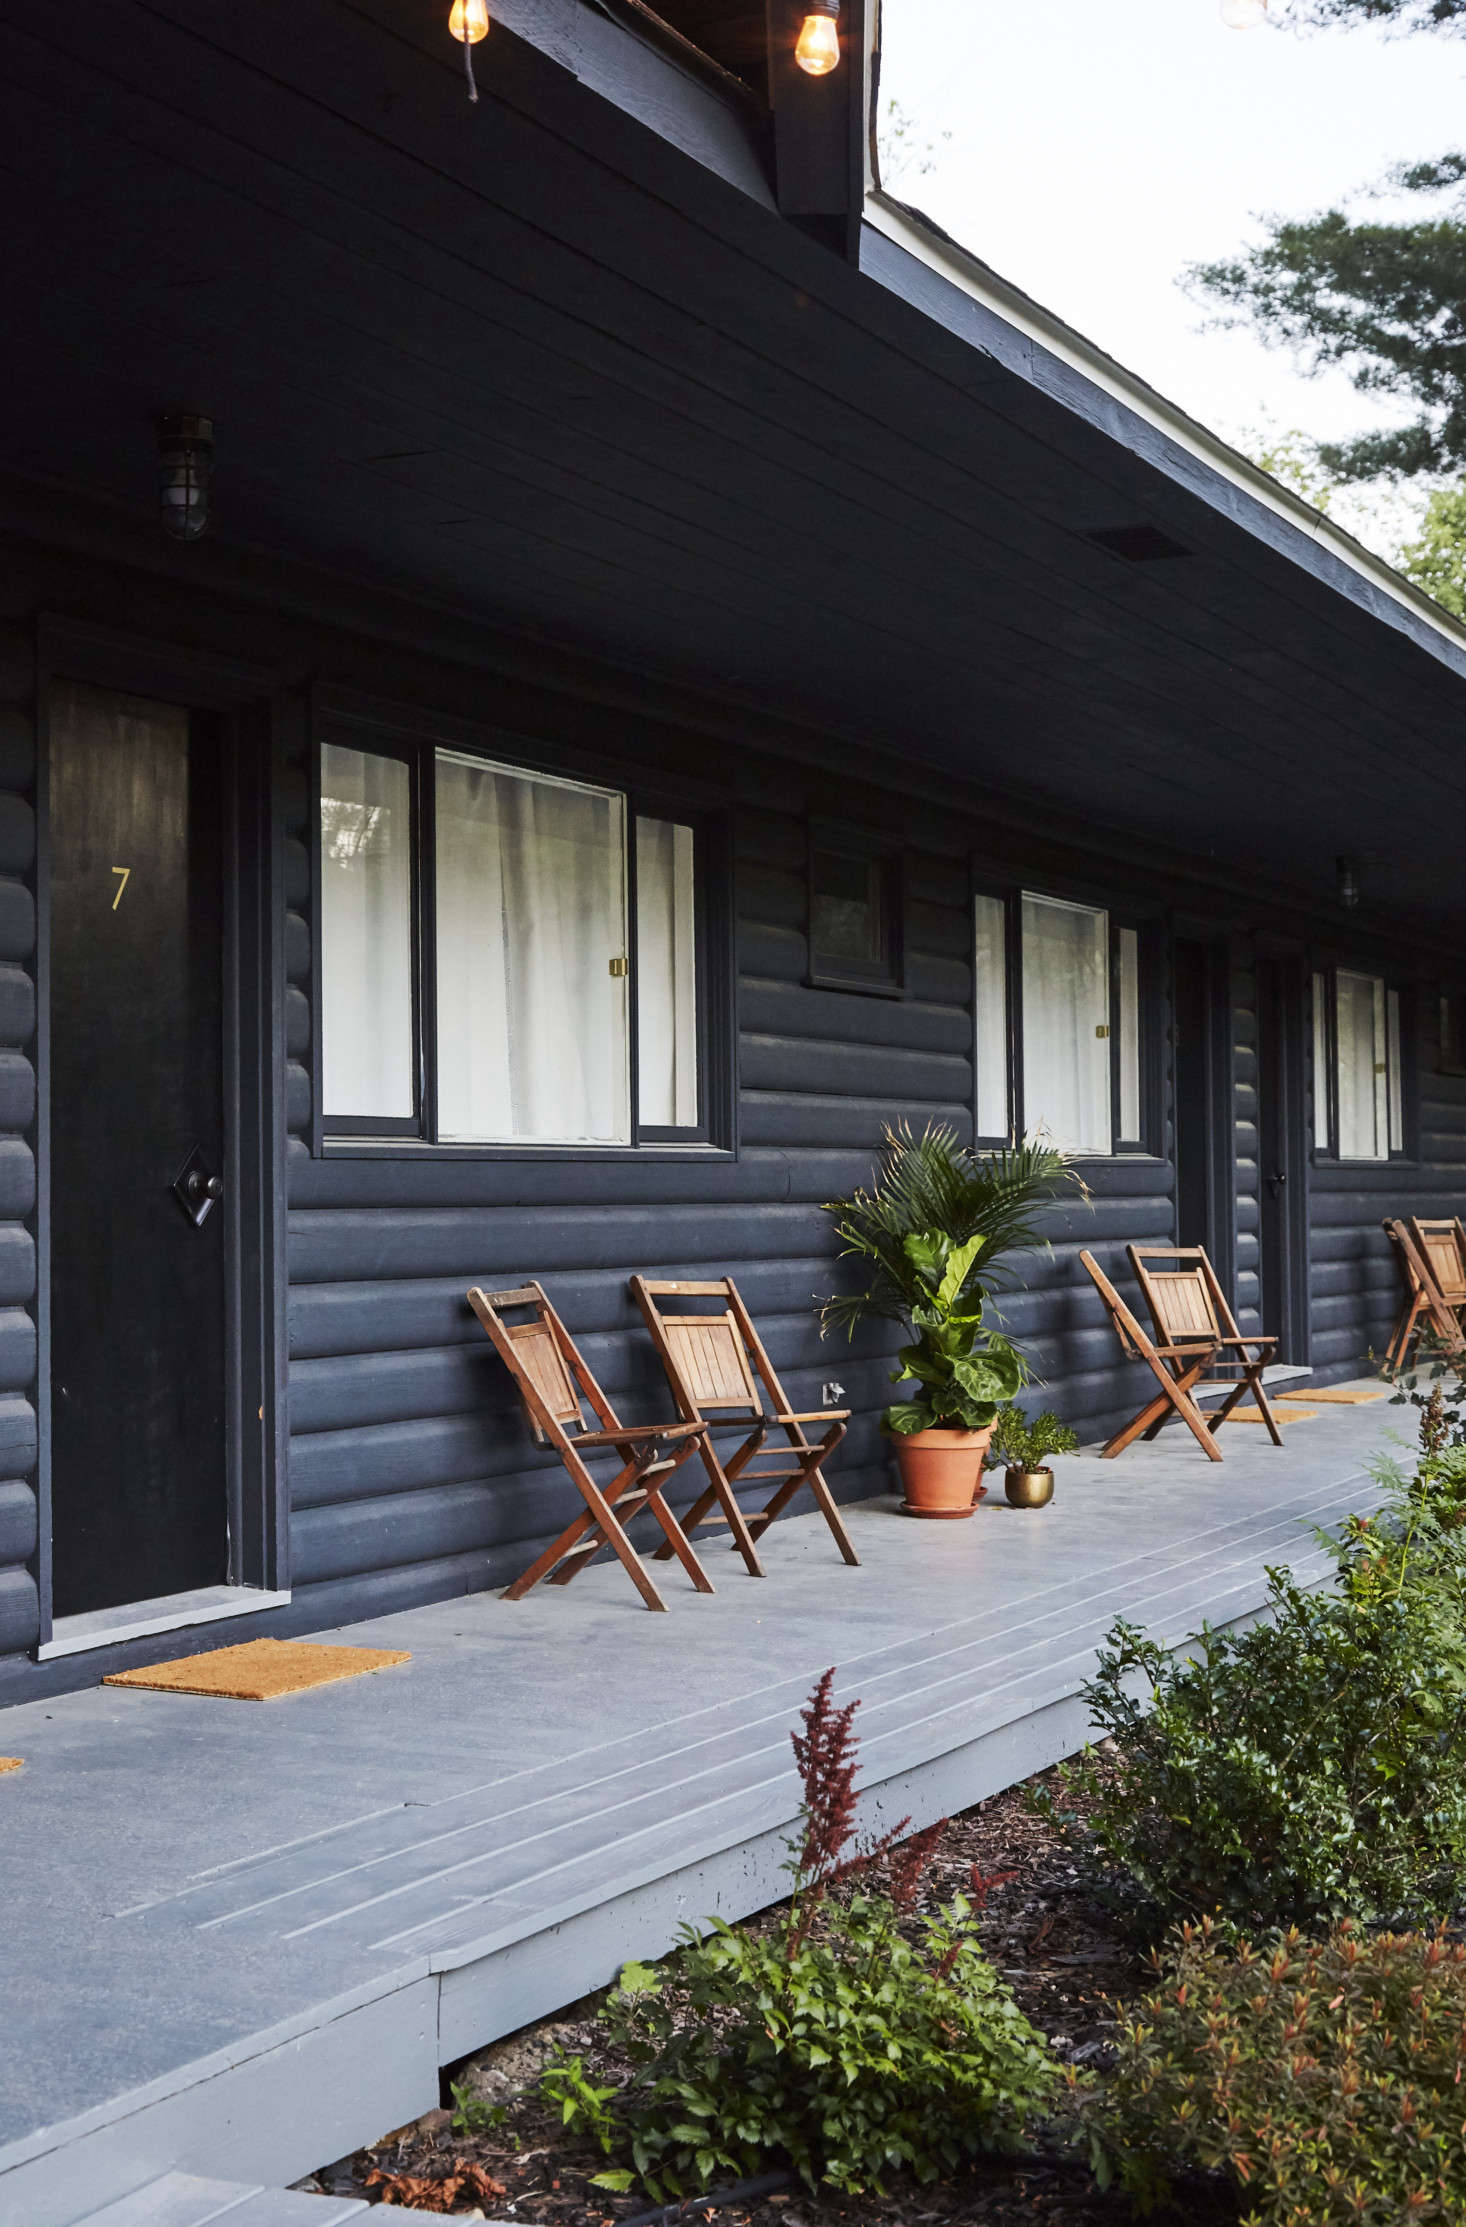 The wooden folding chairs on the porch are original to the lodge.